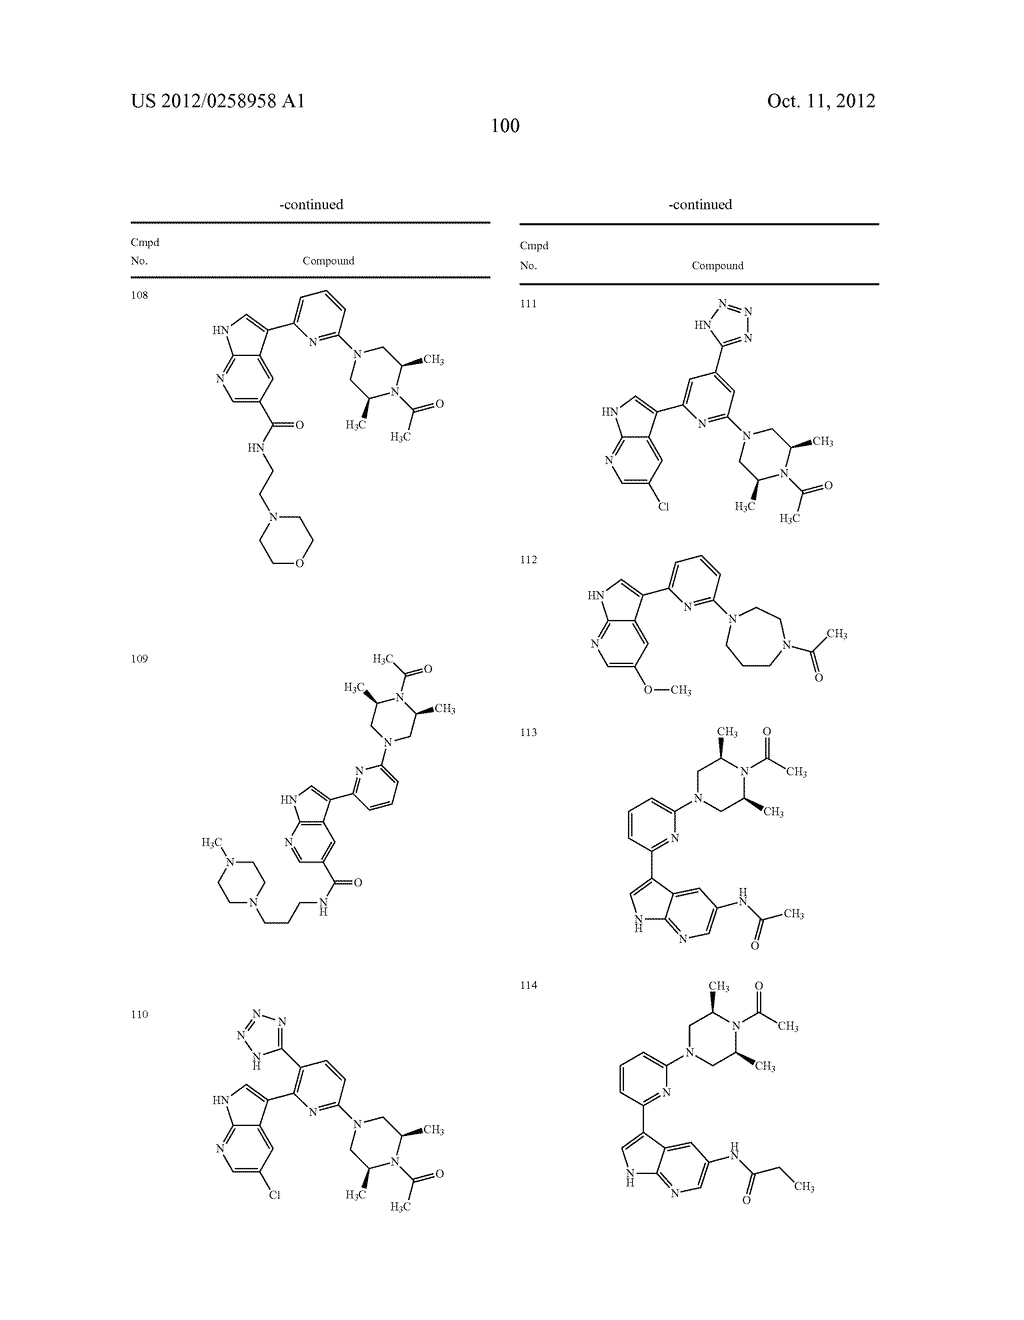 AZAINDOLES USEFUL AS INHIBITORS OF JAK AND OTHER PROTEIN KINASES - diagram, schematic, and image 101